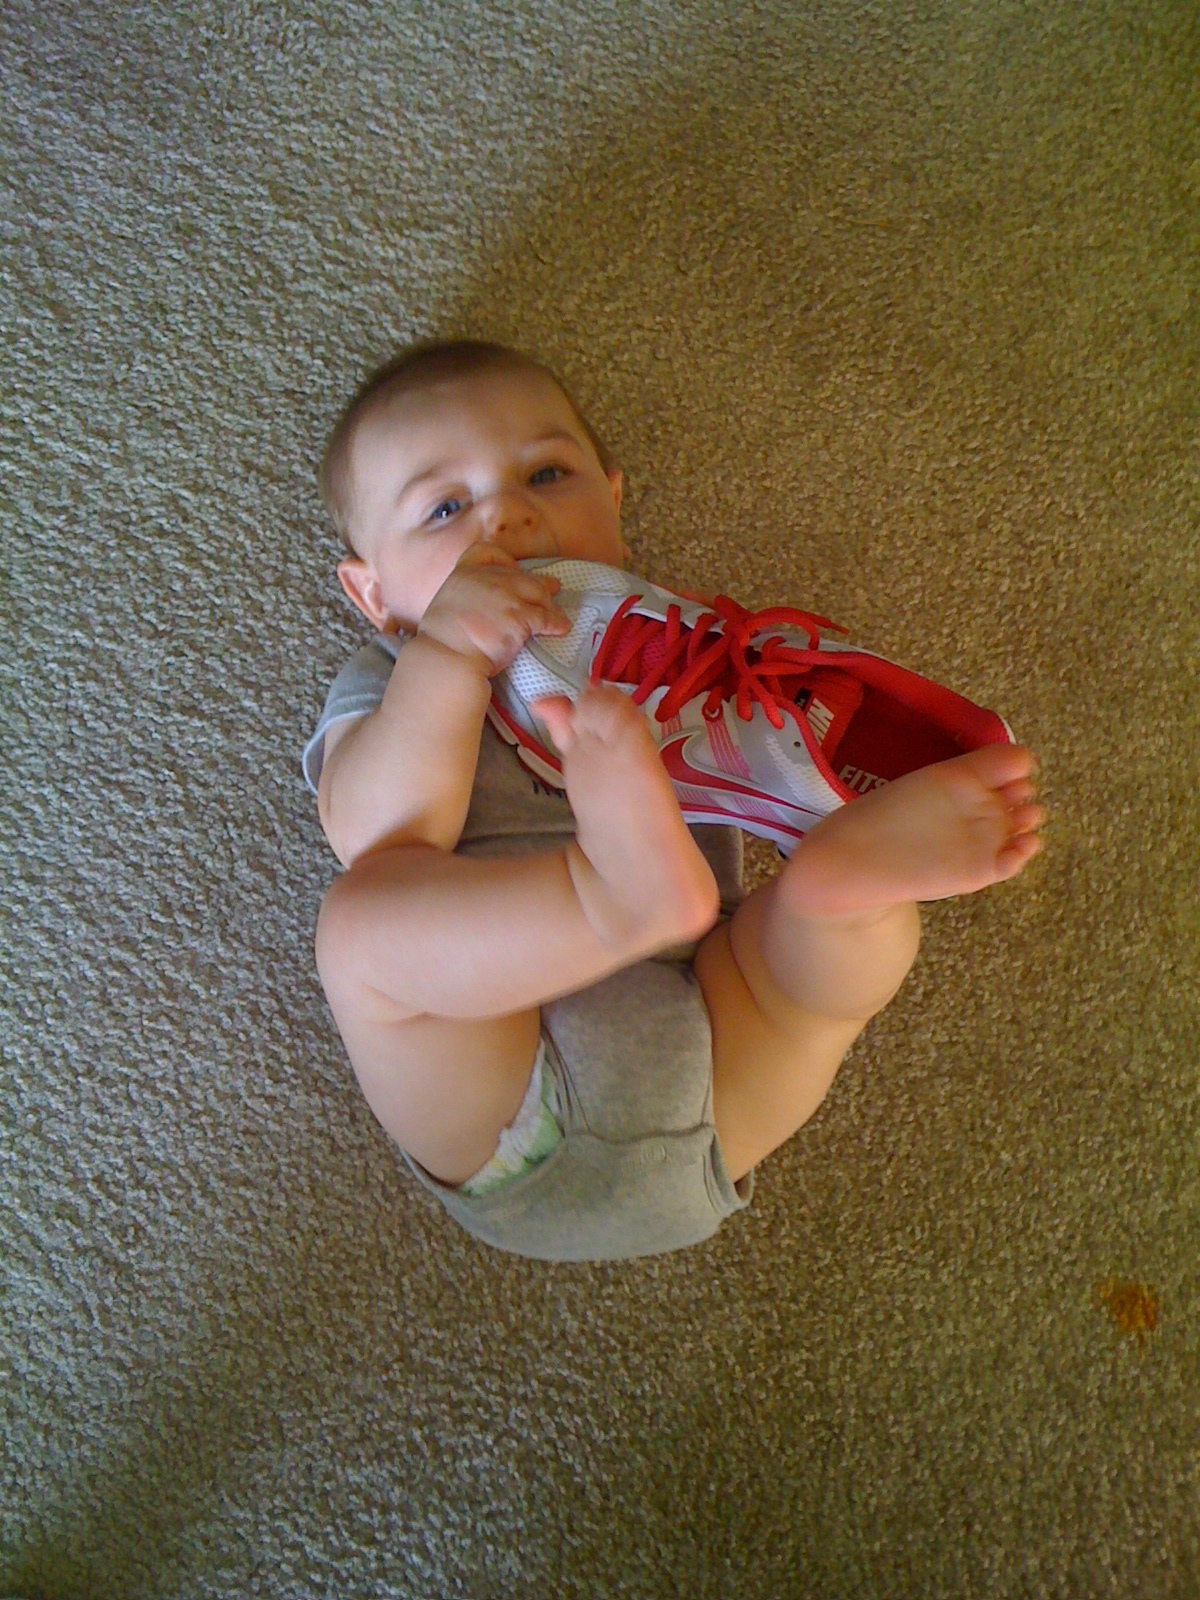 Baby Cameron playing with my shoe. Don't worry it was brand new.